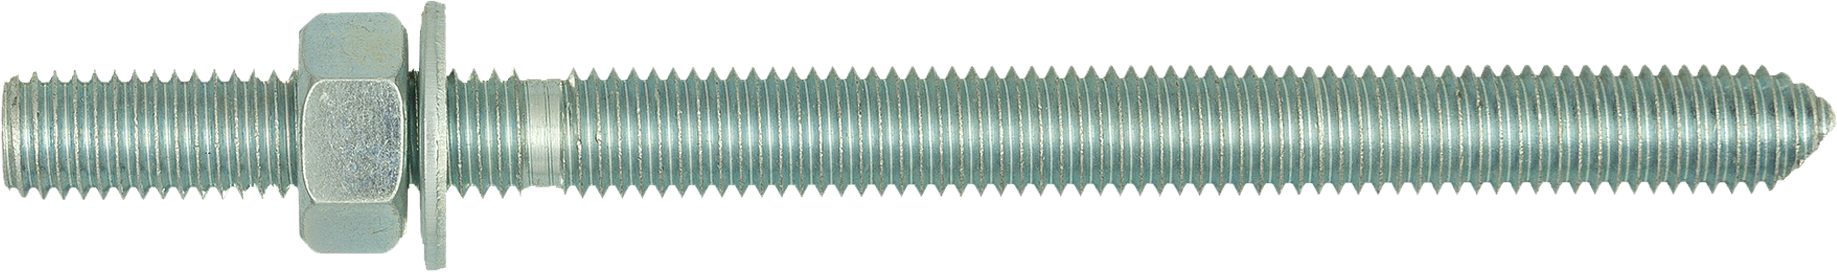 R-STUDS Metric Threaded Rods - A4, Flat Head